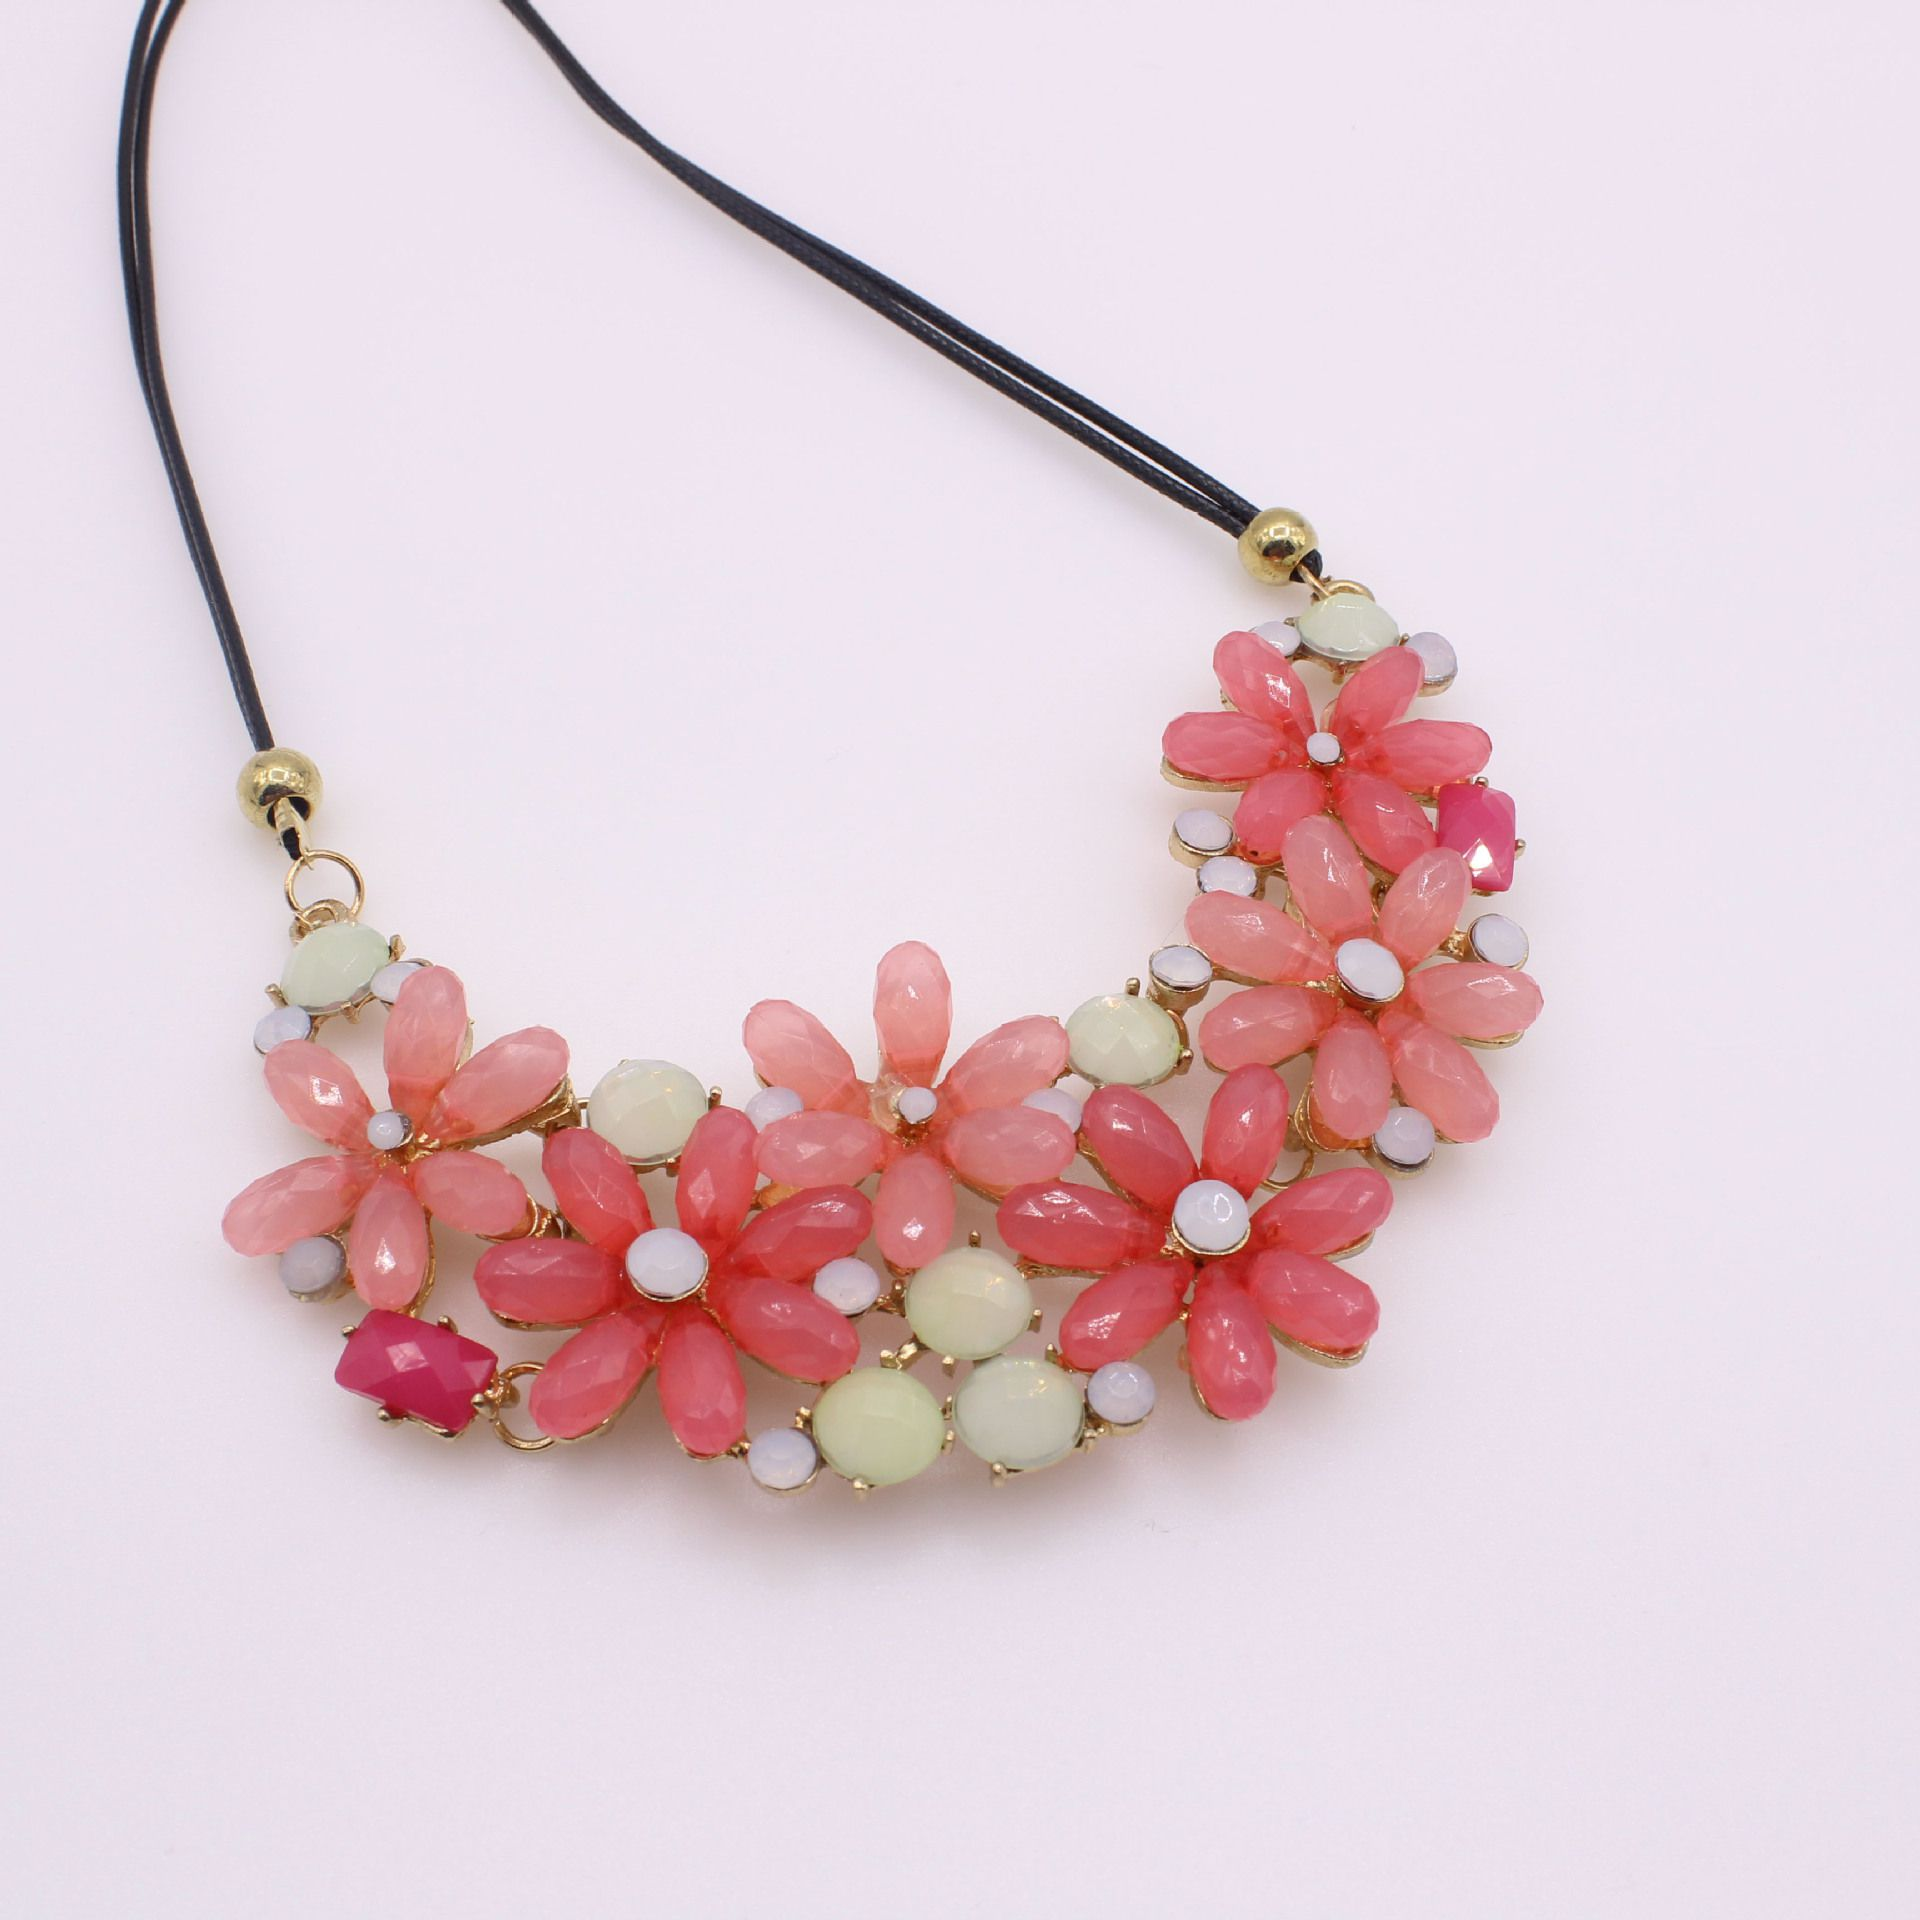 Kamalife Fashion Flowers Pink Necklace Jewelry Accessories